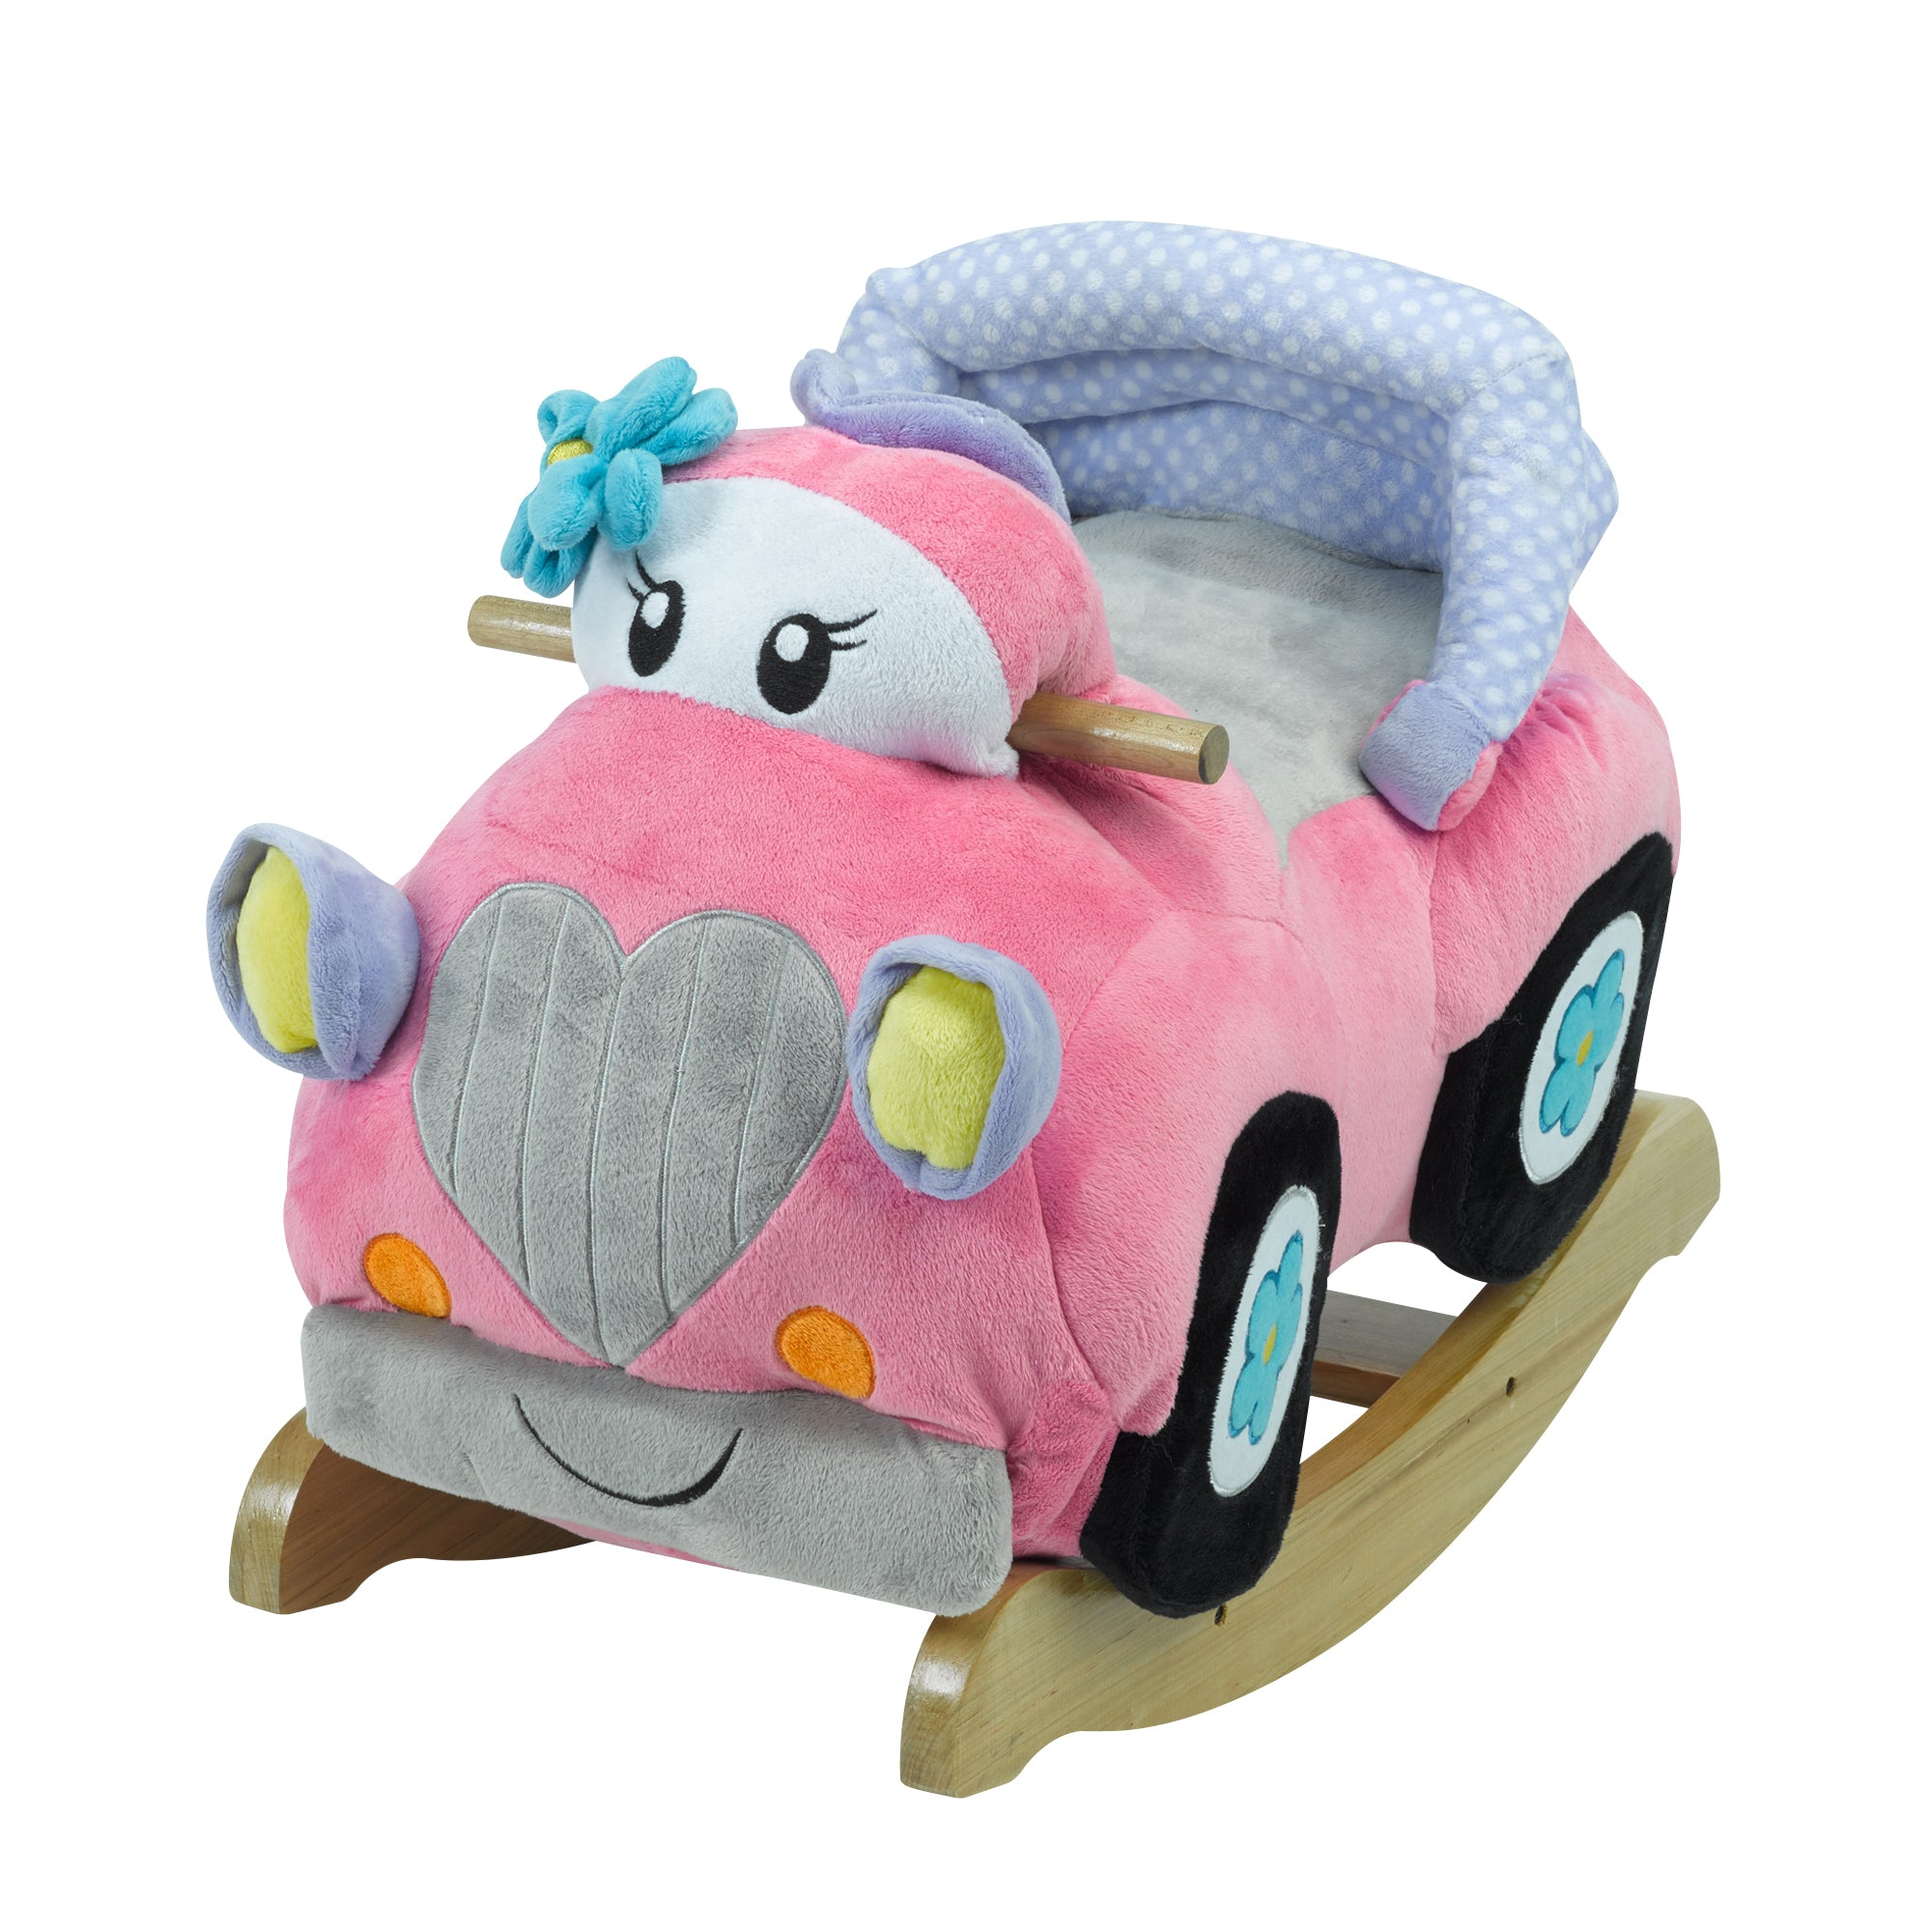 Carli the Convertible Car Play & Rock